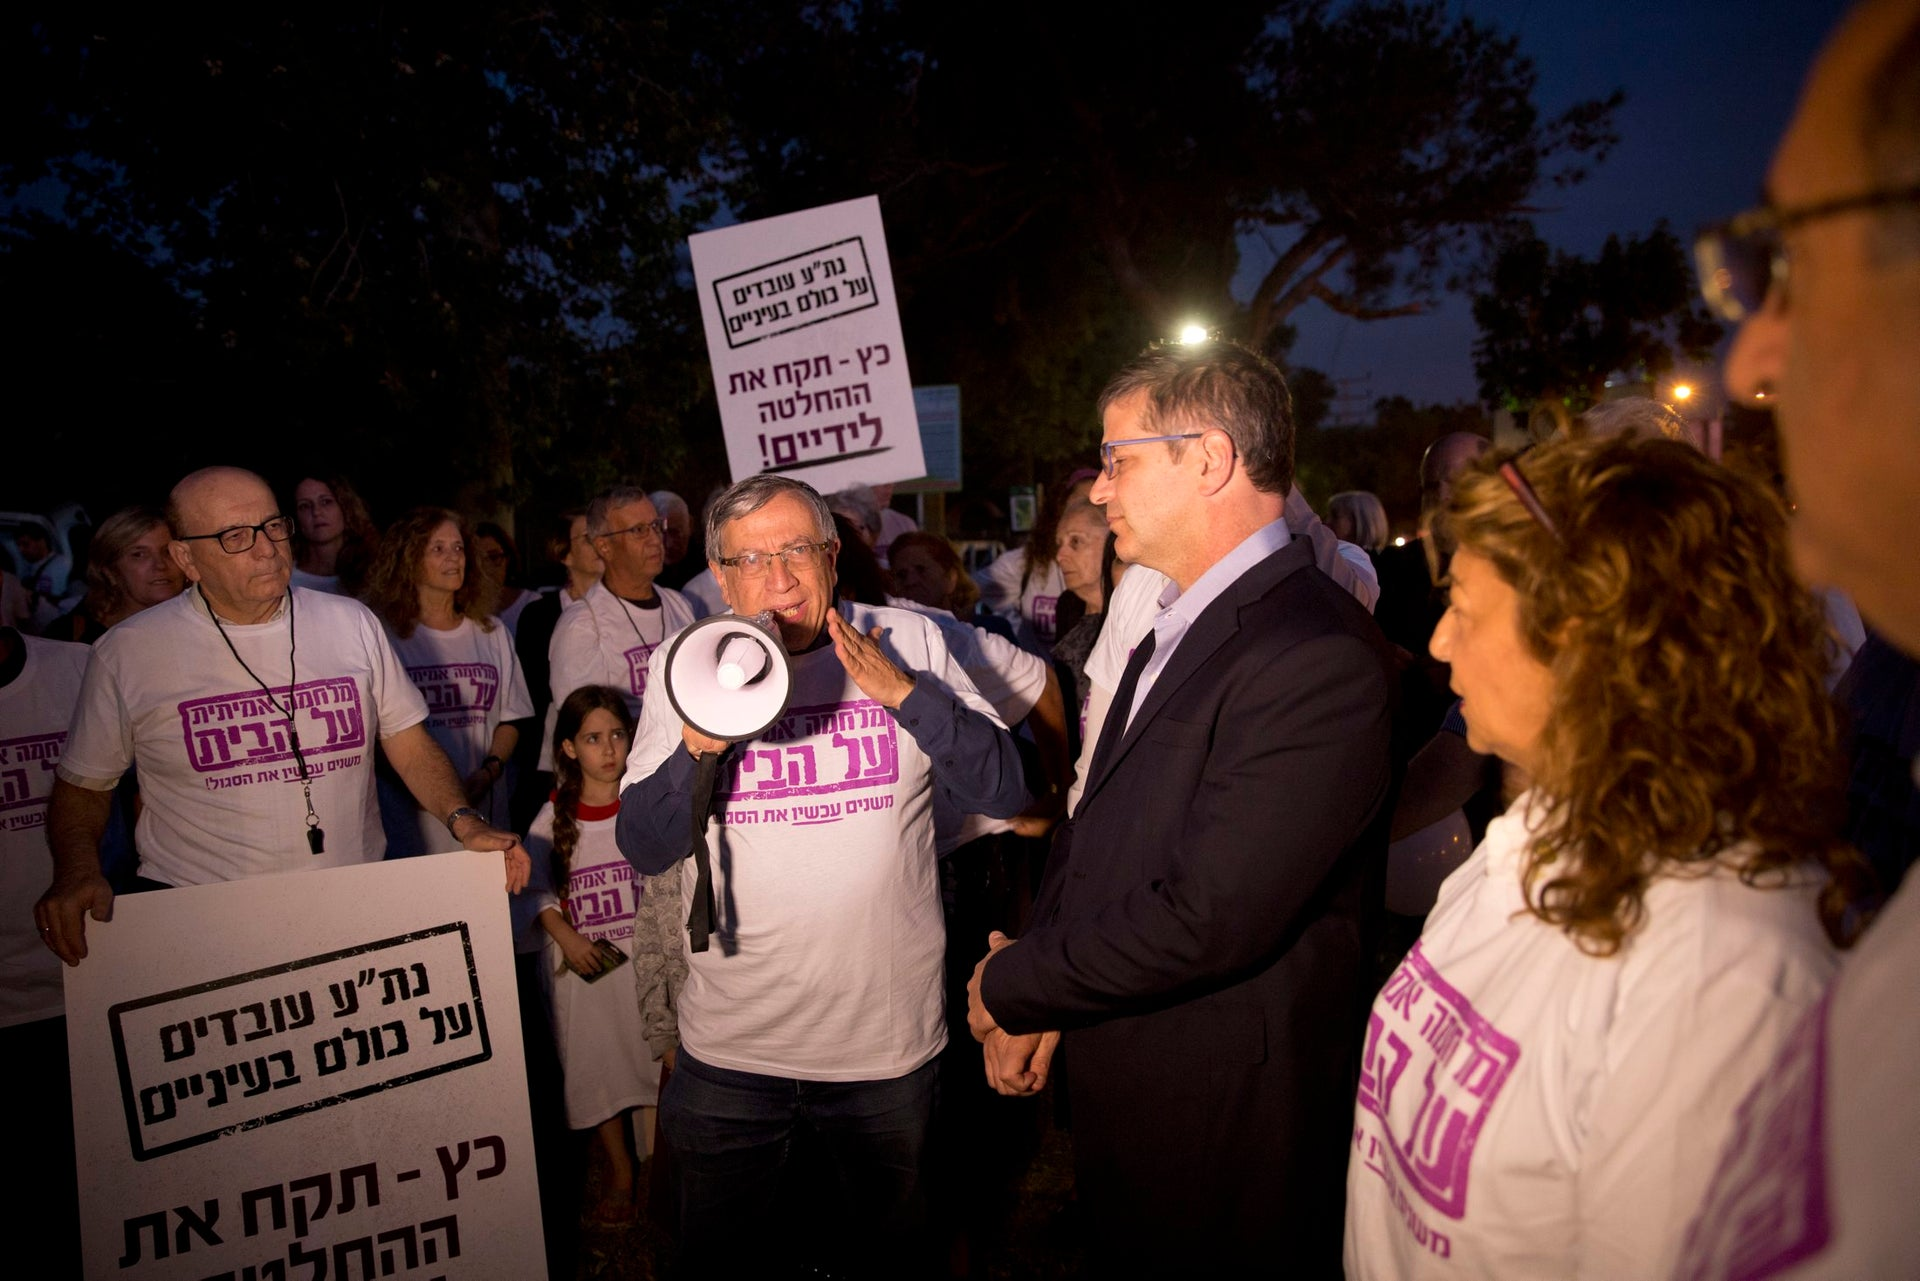 A protest against the planned route of the Purple Line in Ramat Gan in November 2017, led by Mayor Yisrael Zinger.